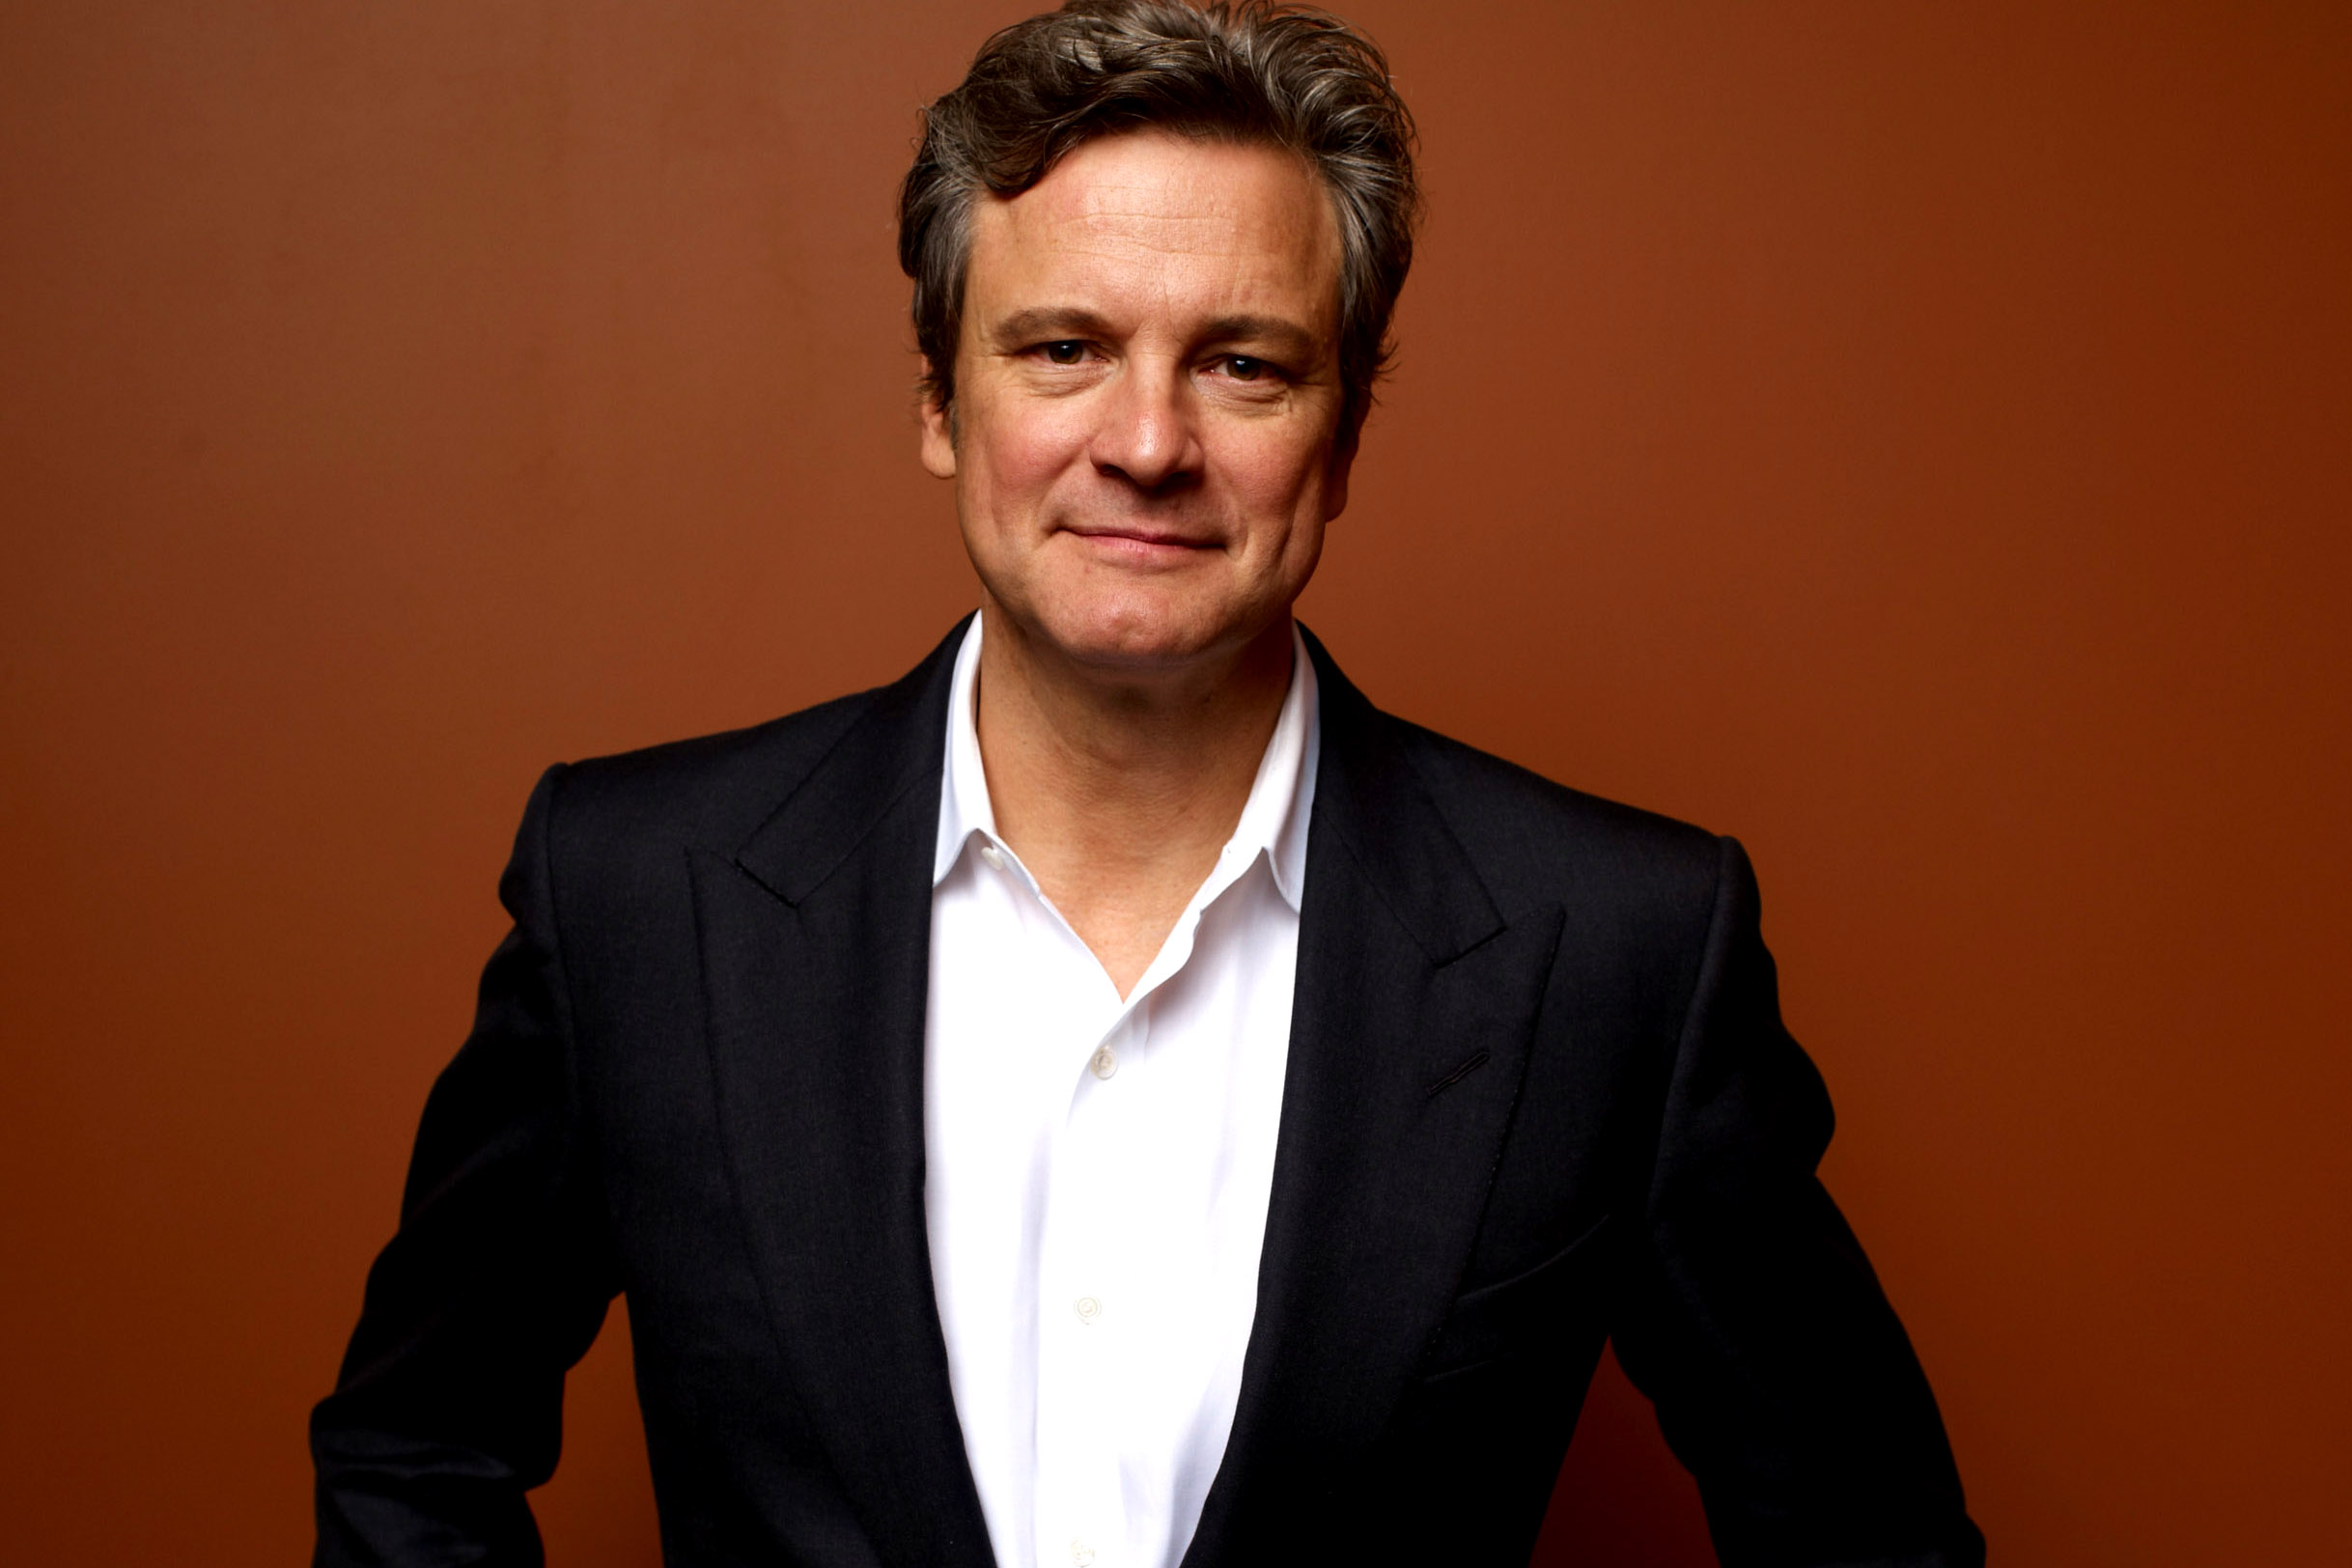 Images of Colin Firth | 2436x1624